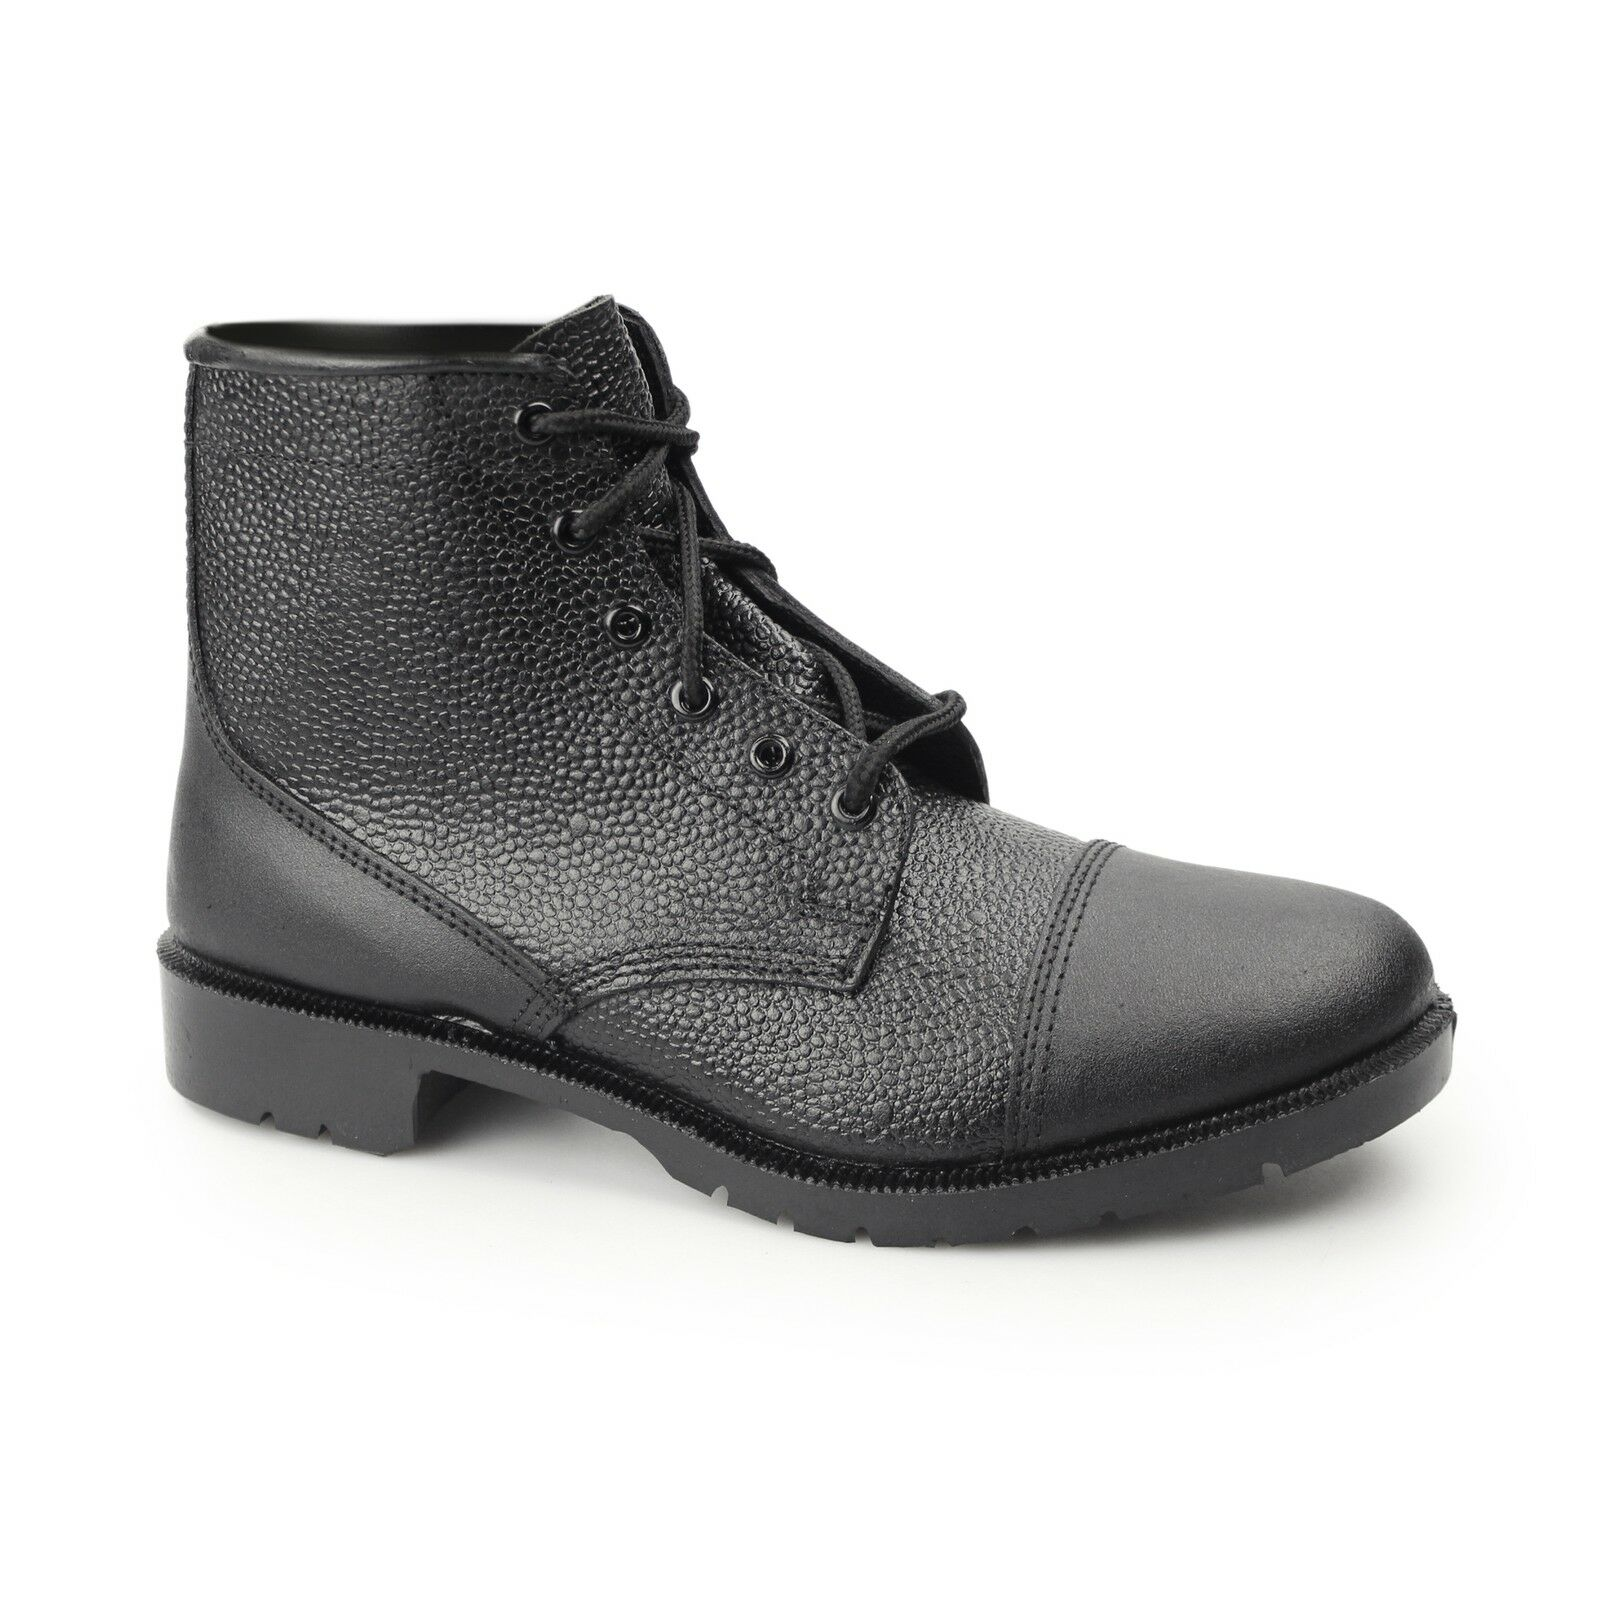 Grafters Mens Ladies NON-SAFETY Grain Leather Lace Up Cadet Work Boots Black